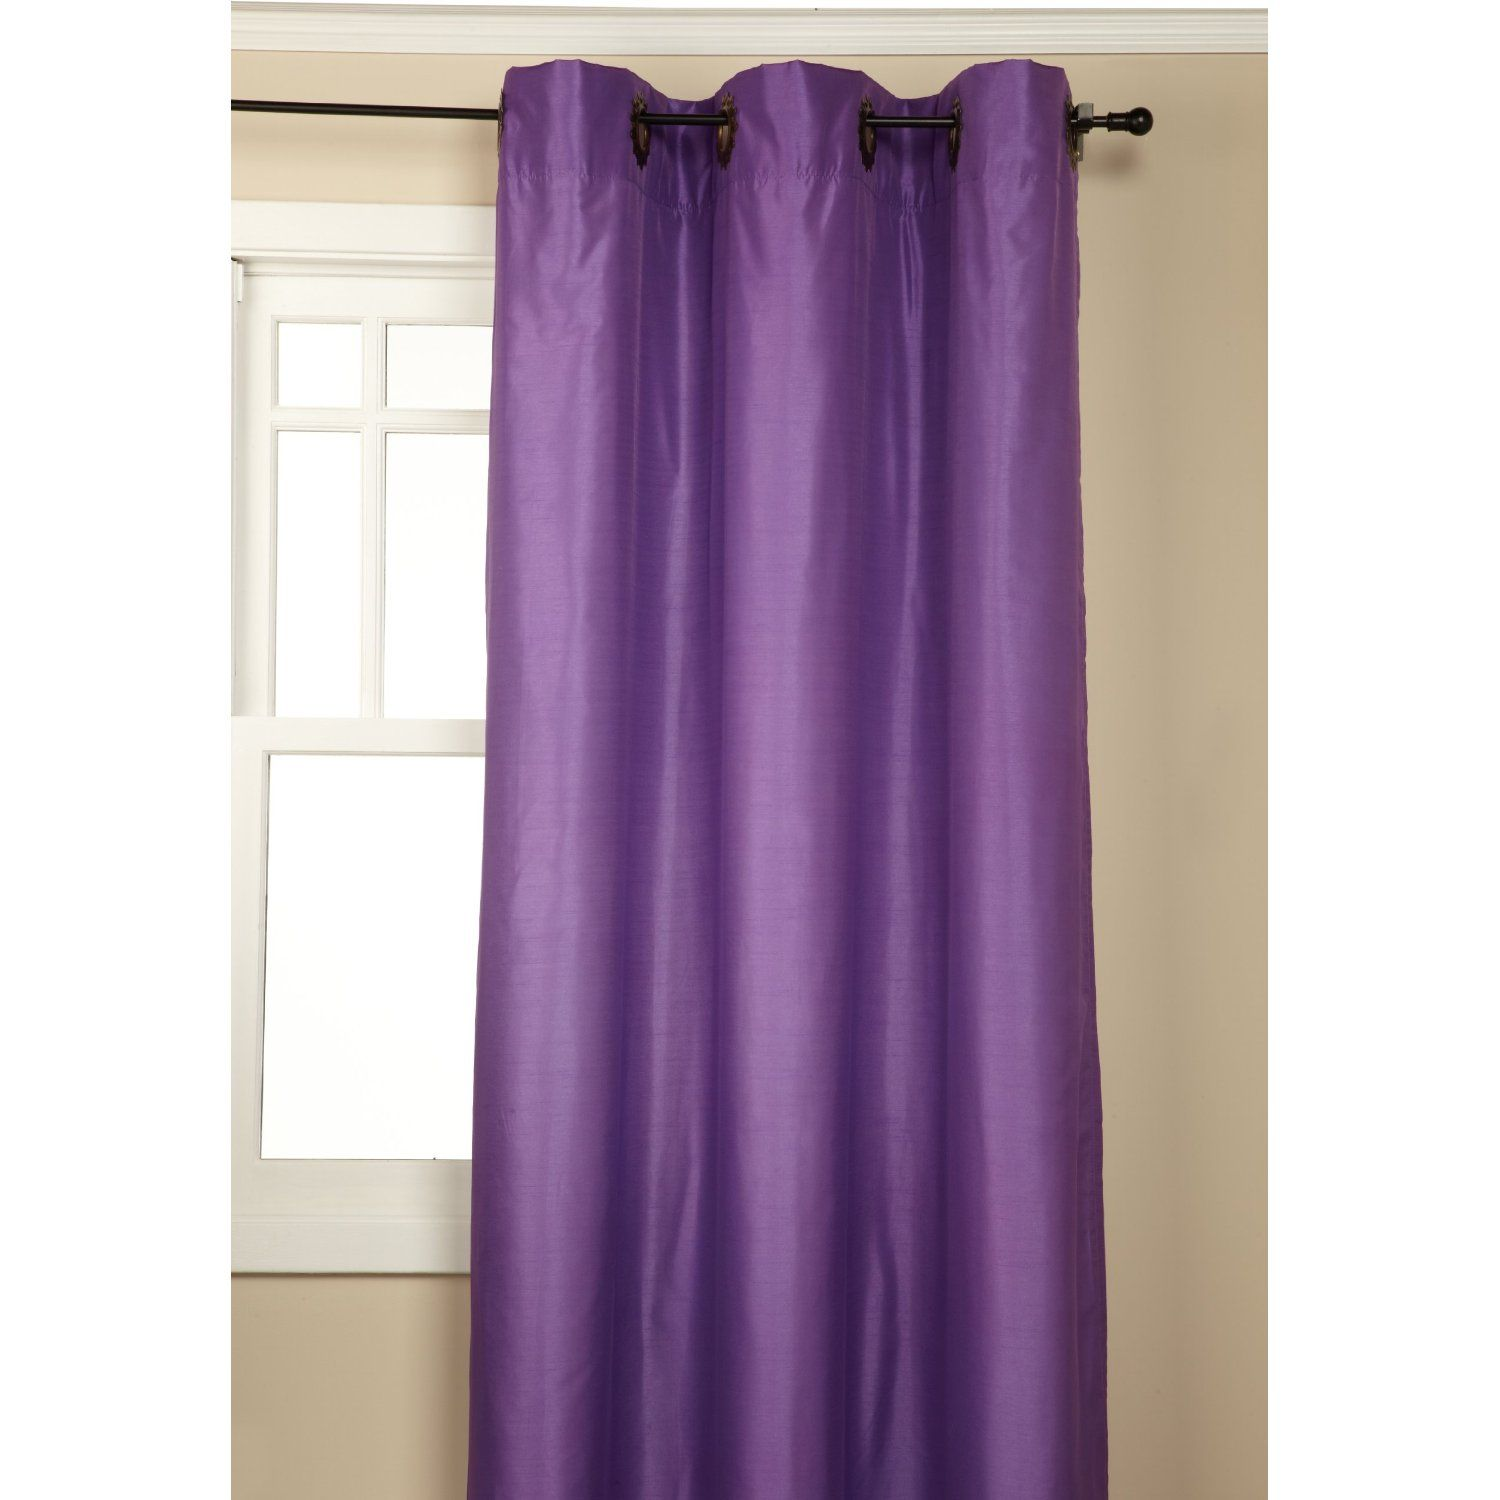 double thin inch concept ft rod rods curtain curtains pictures long extra wide window striking